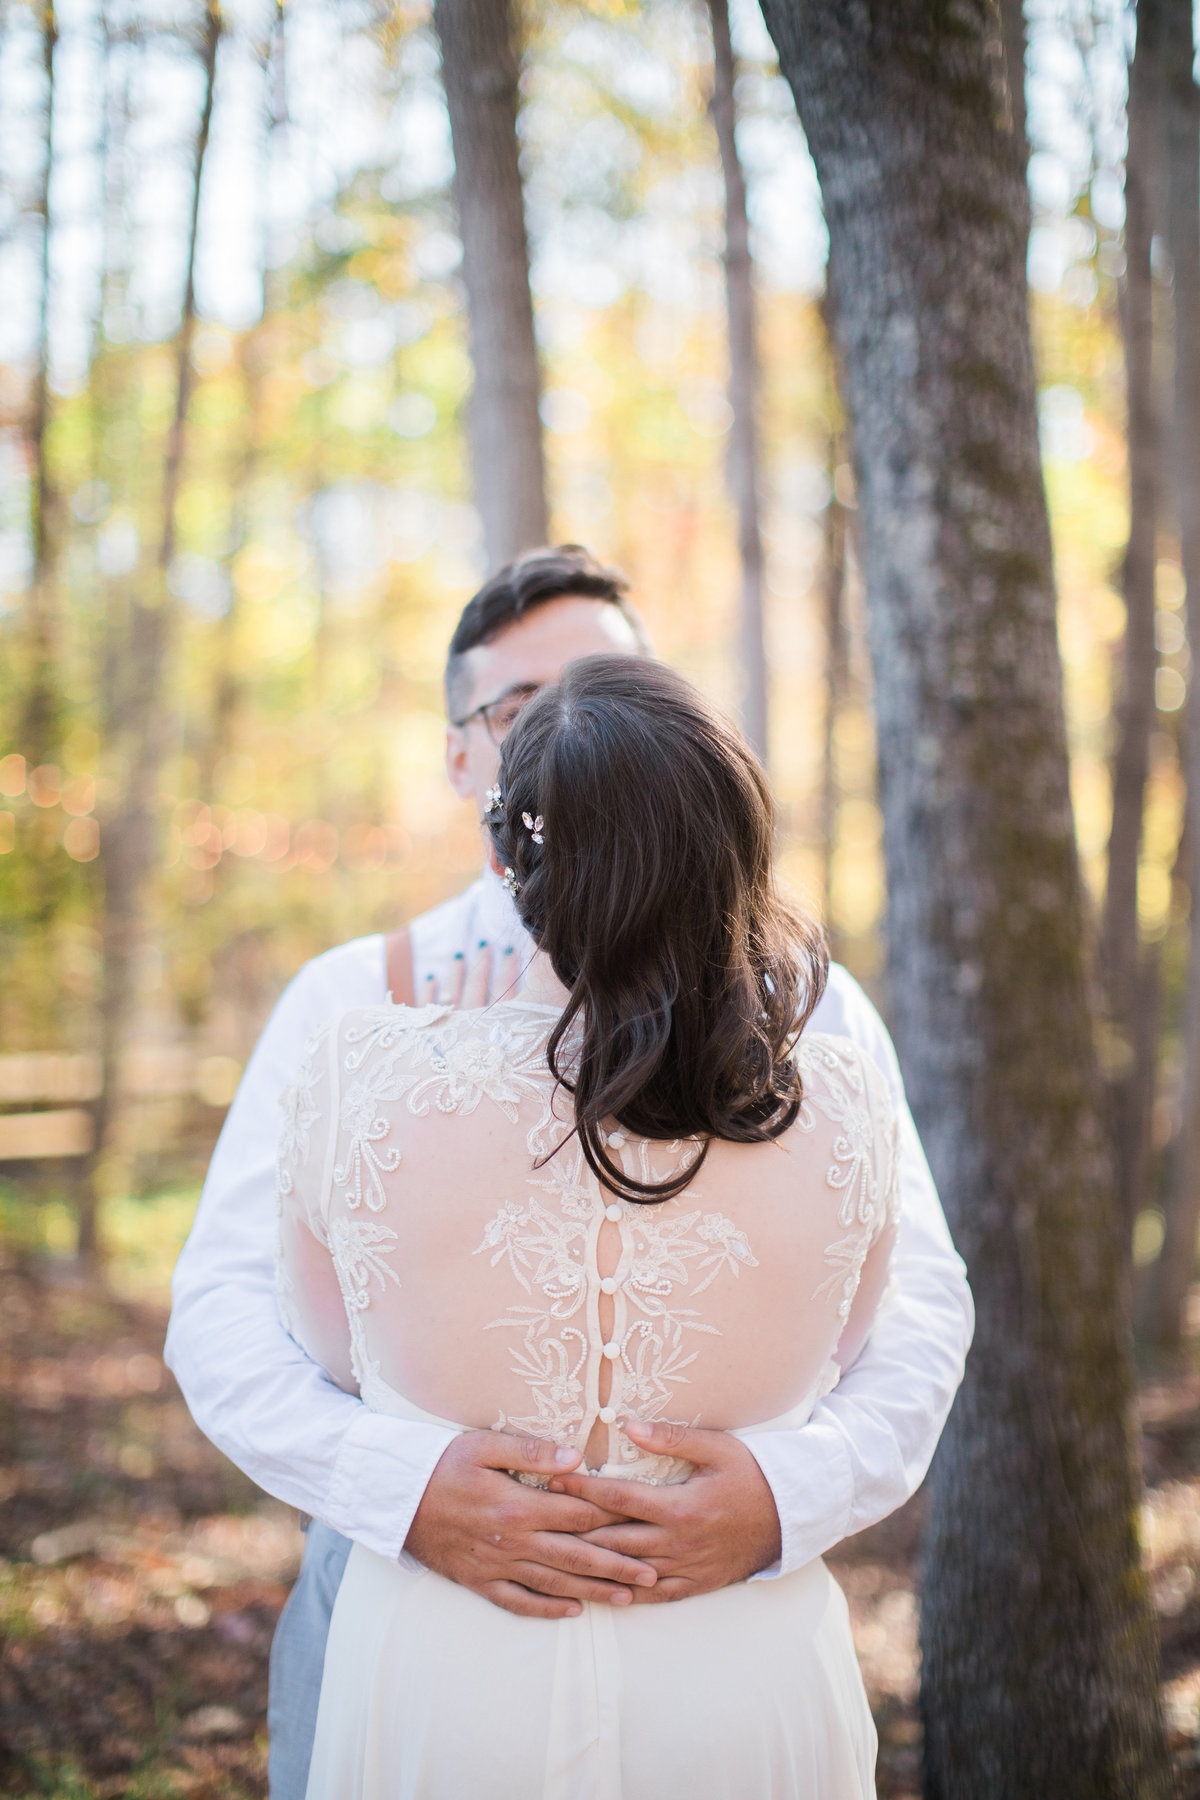 Wedding Photographer, bride and groom holding each other with her back toward the camera